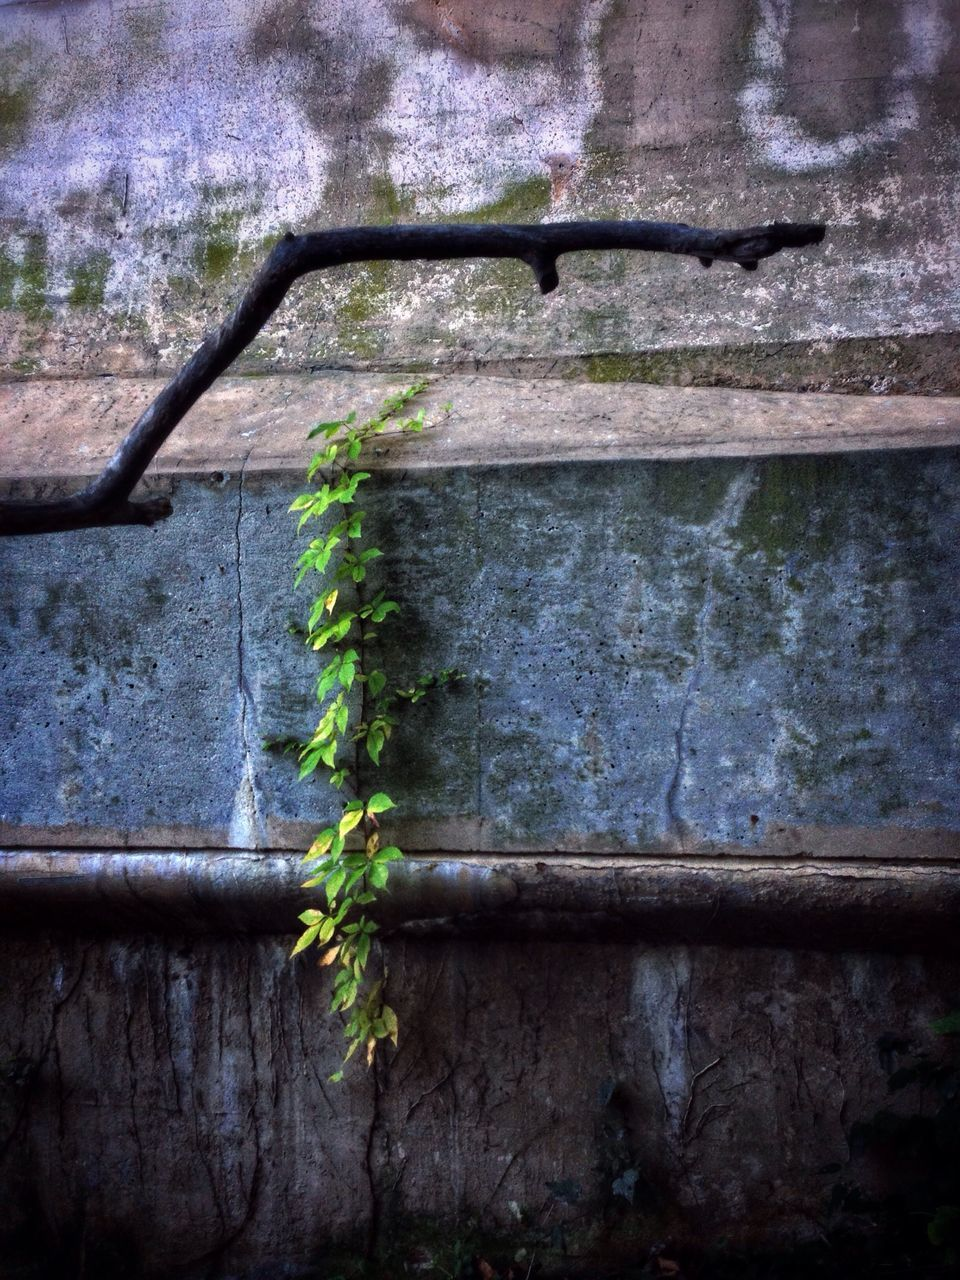 plant, day, growth, no people, nature, ivy, green color, outdoors, built structure, leaf, architecture, close-up, beauty in nature, animal themes, tree